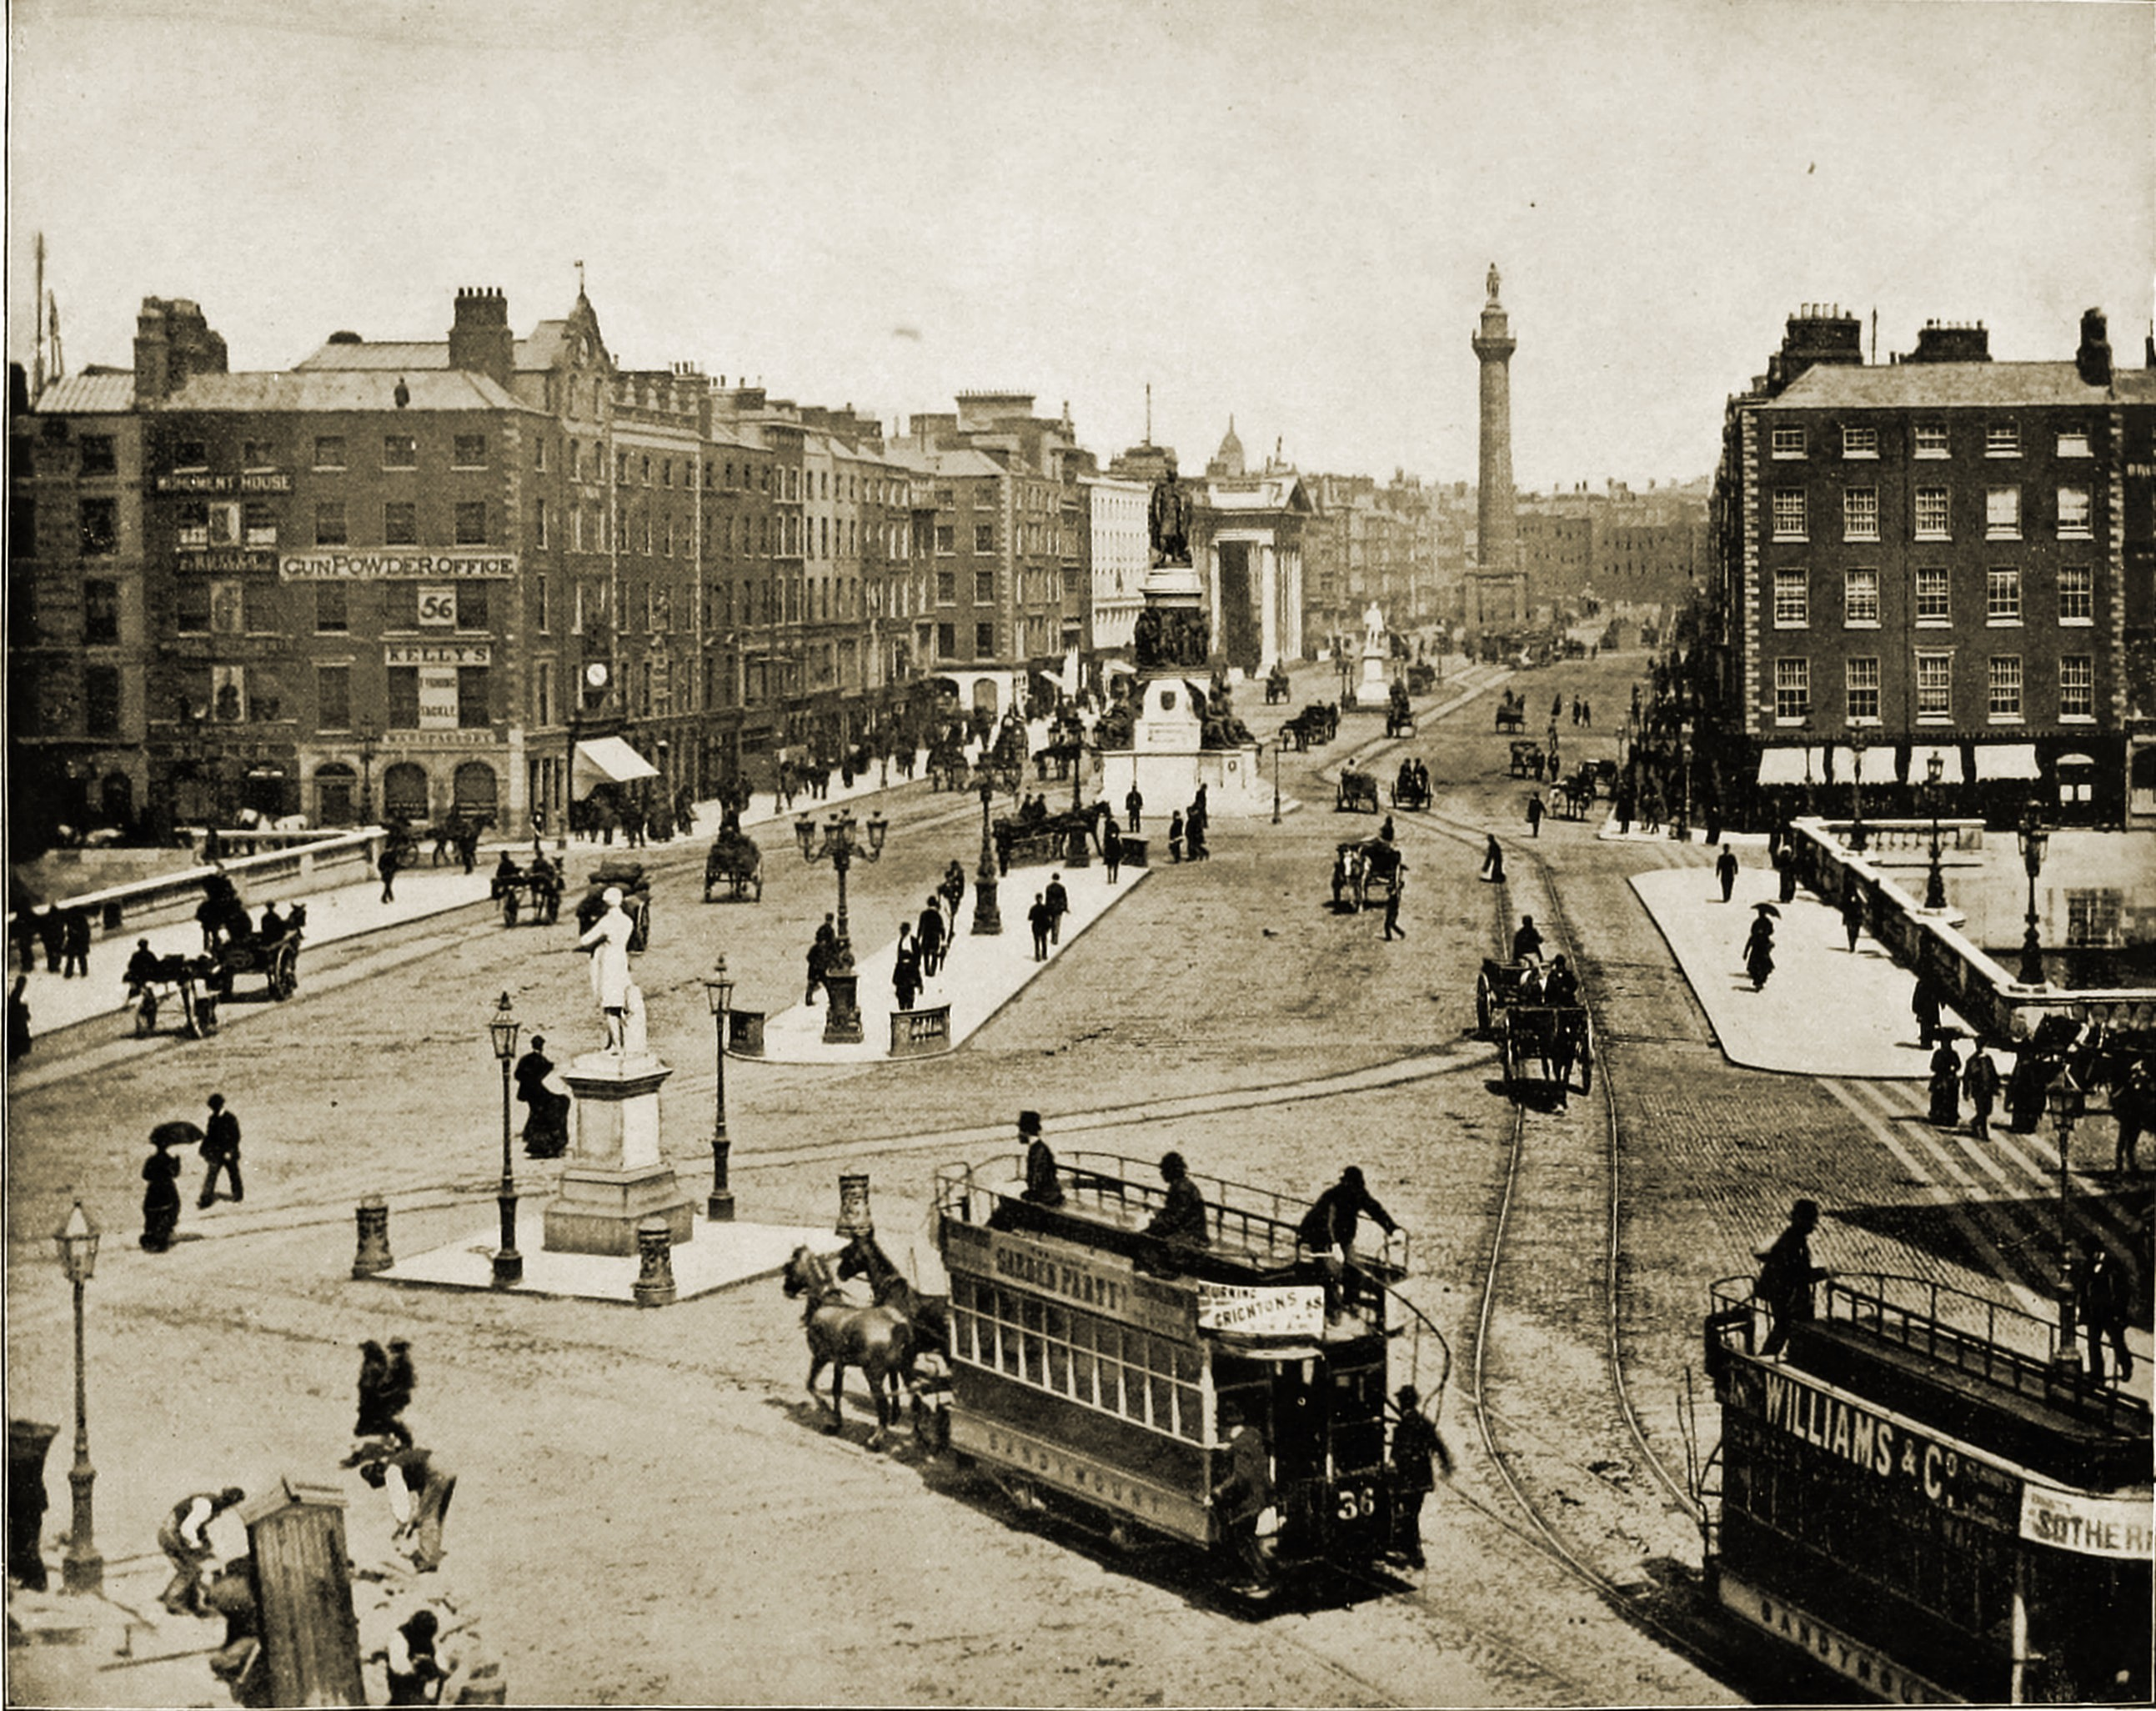 Sackville Street Dublin Ireland about 1892